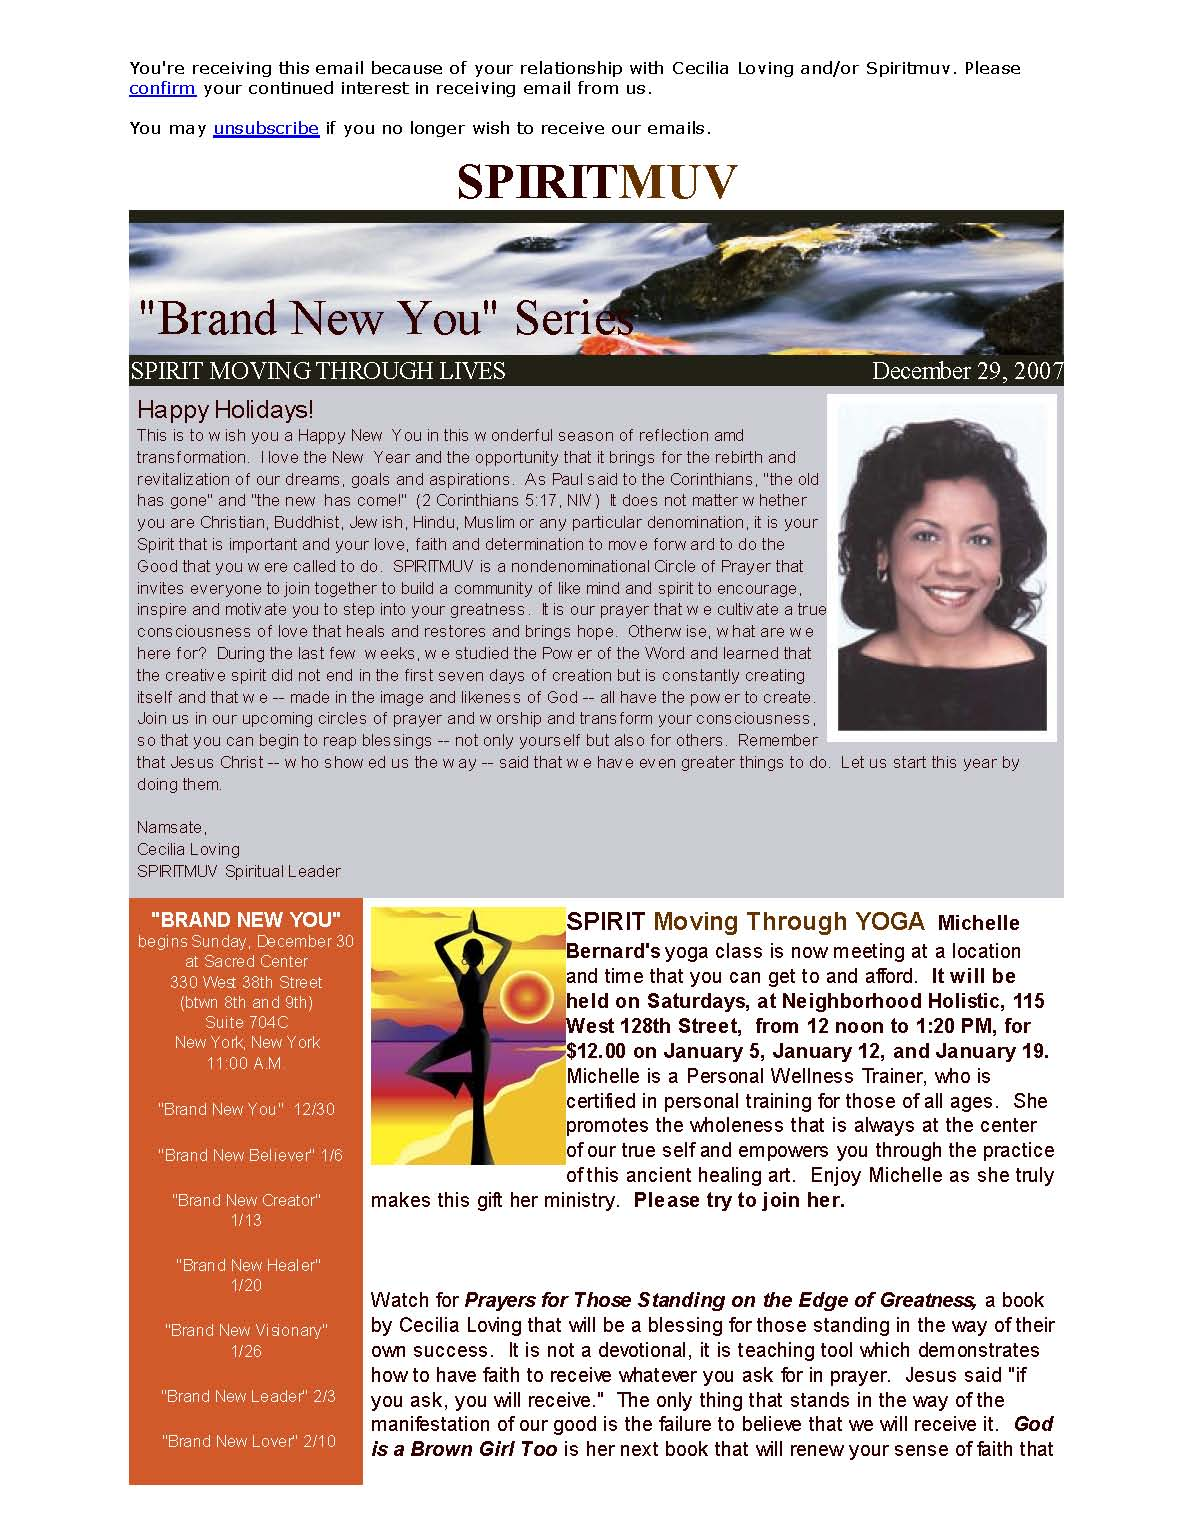 December 2007 A Brand New You